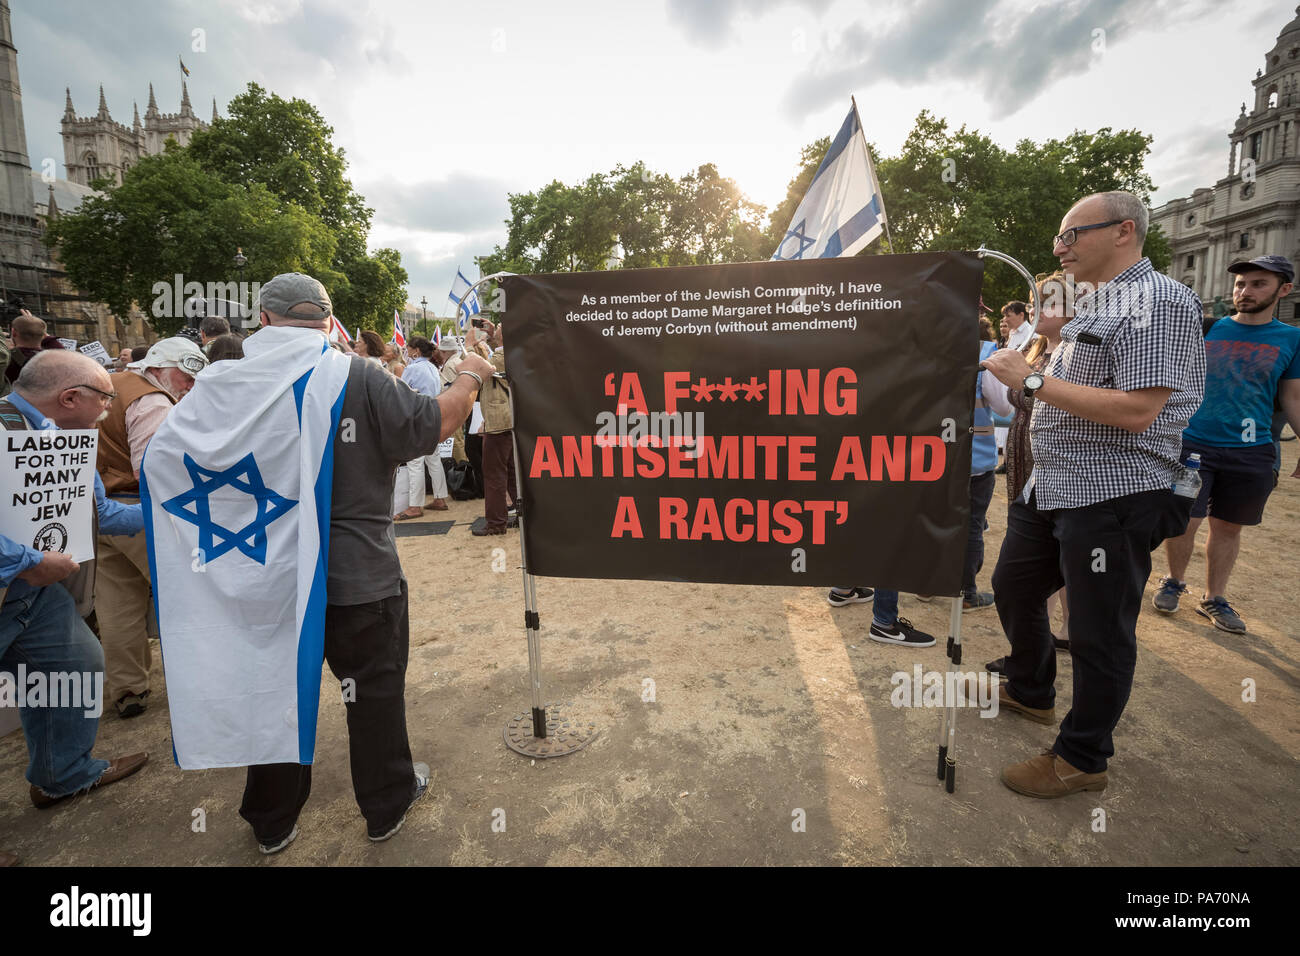 London, UK. 19th July 2018. Demonstration in Parliament Square against alleged issues of Labour party antisemitism by members of the Jewish community organised by the Campaign Against Antisemitism (CAA). Credit: Guy Corbishley/Alamy Live News - Stock Image